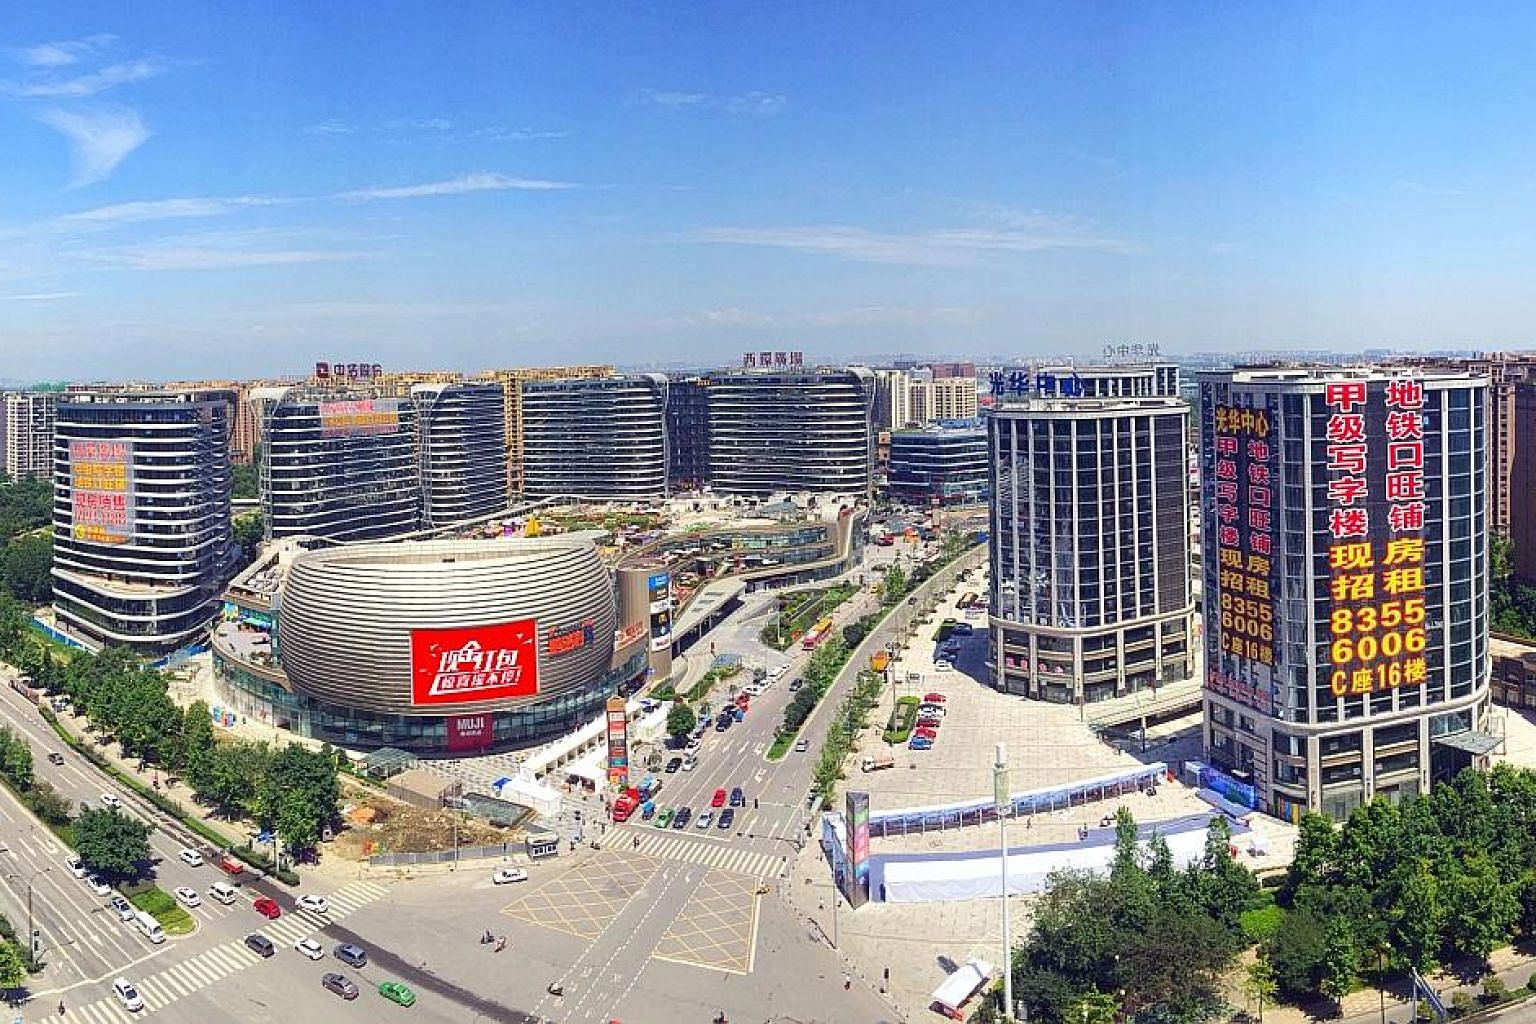 Western Plaza in Chengdu, China, comprises four office towers with retail space, making up a total floor area of about 75,000 sq m, as well as an 18-storey hotel with more than 300 rooms.